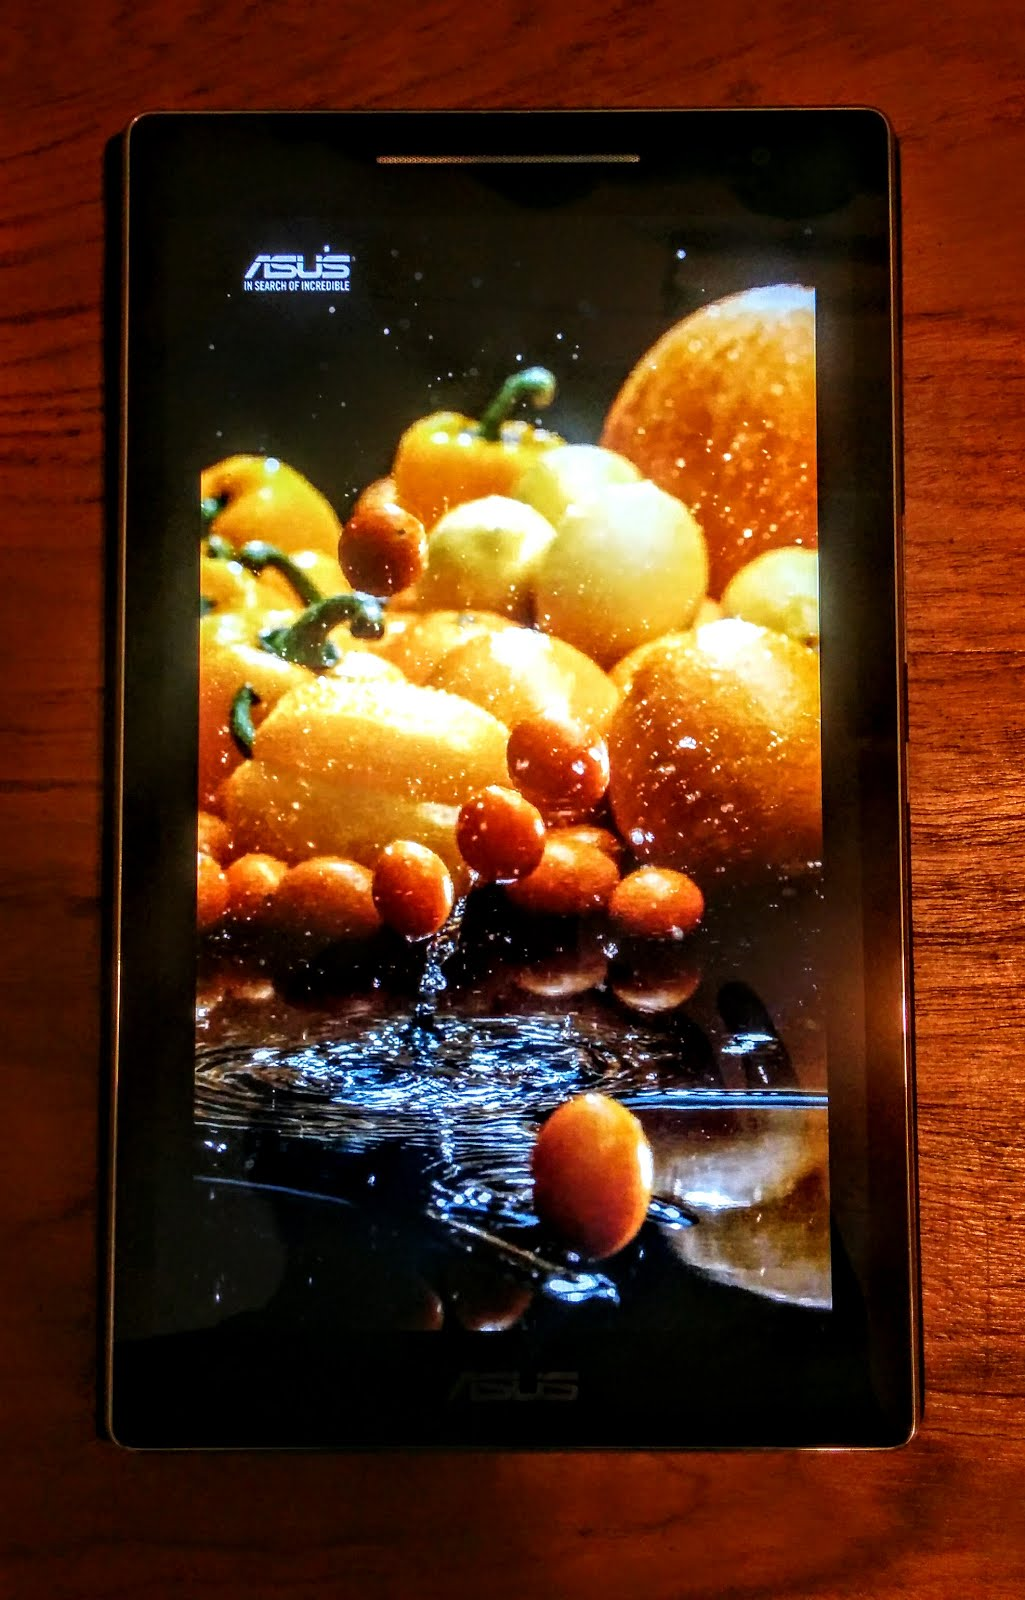 Slow Motion Videos on ASUS ZenPad 8 Tablet